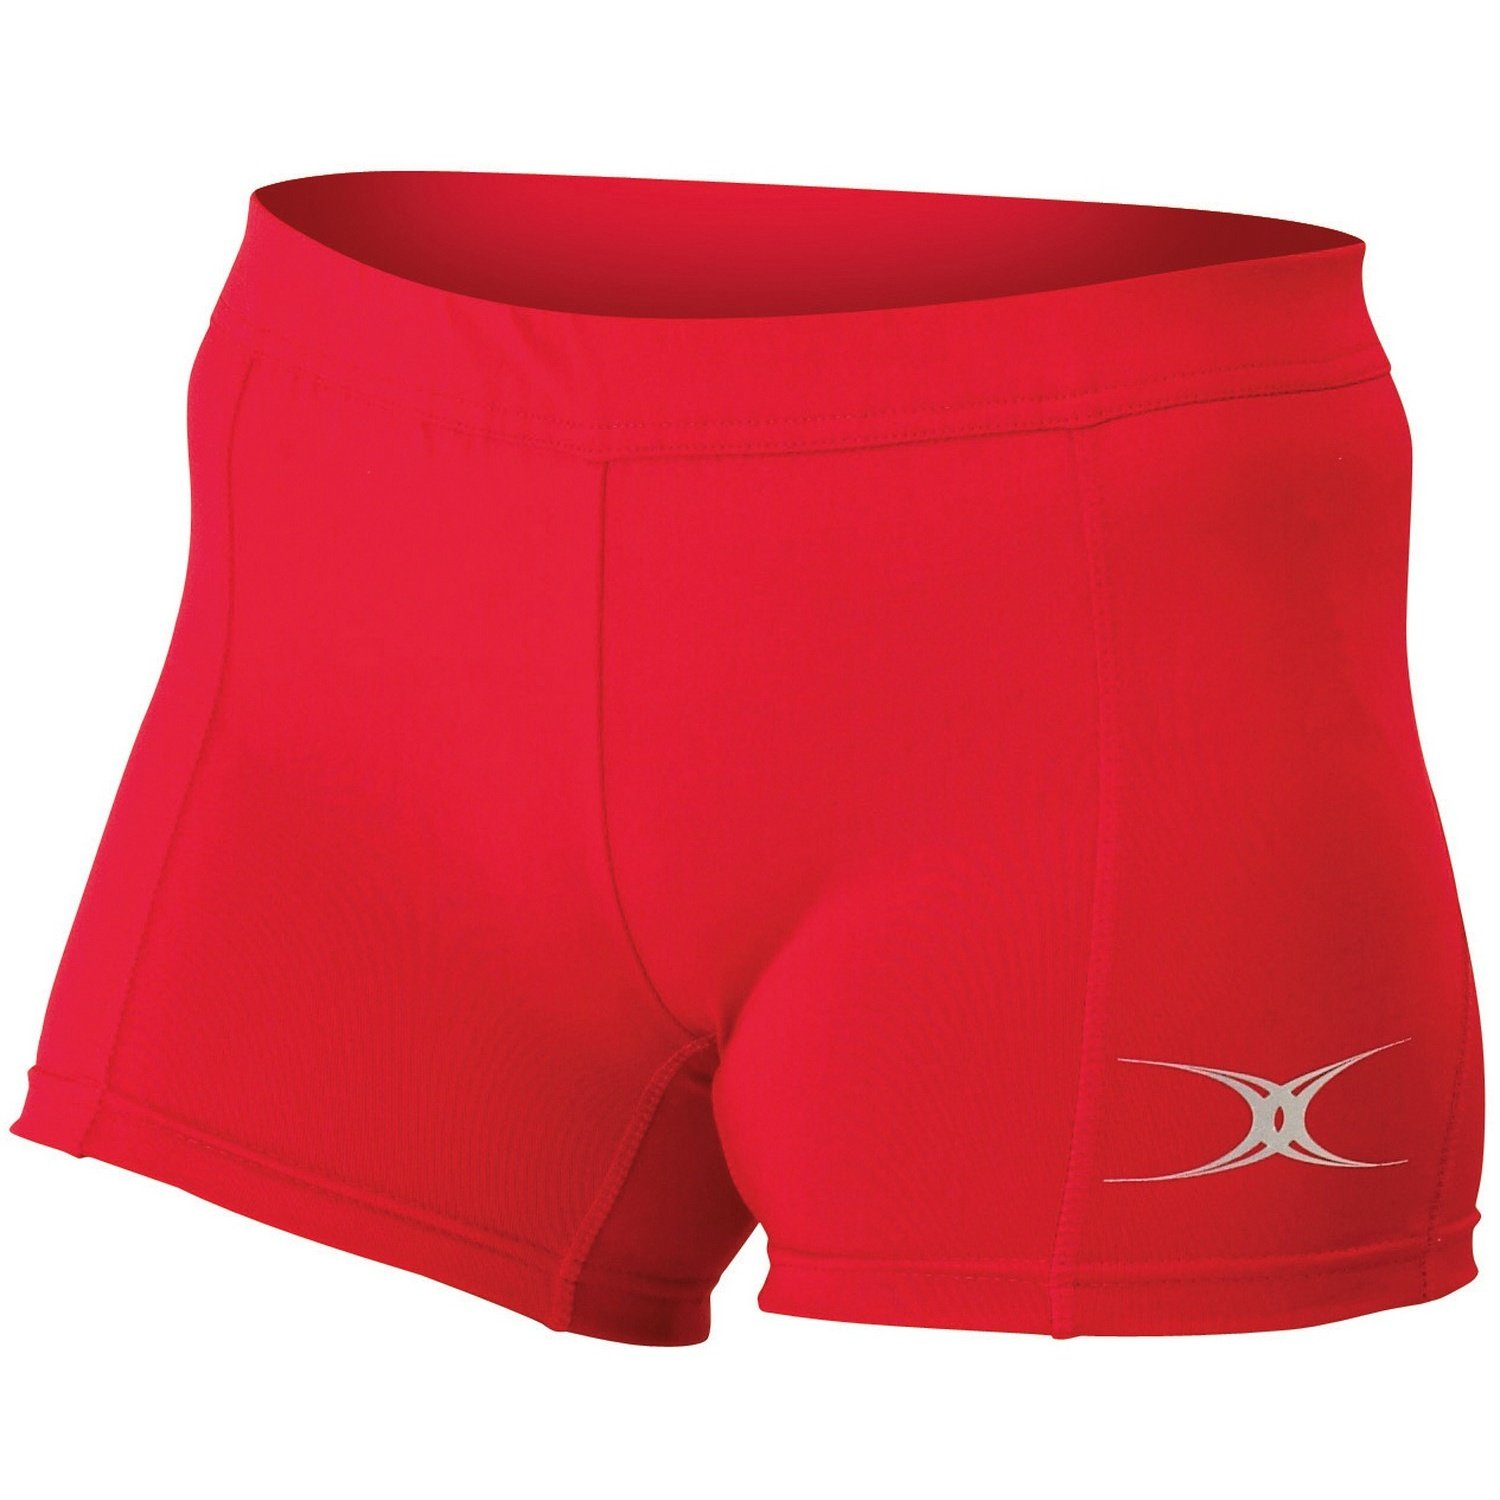 Gilbert Netball Eclipse short